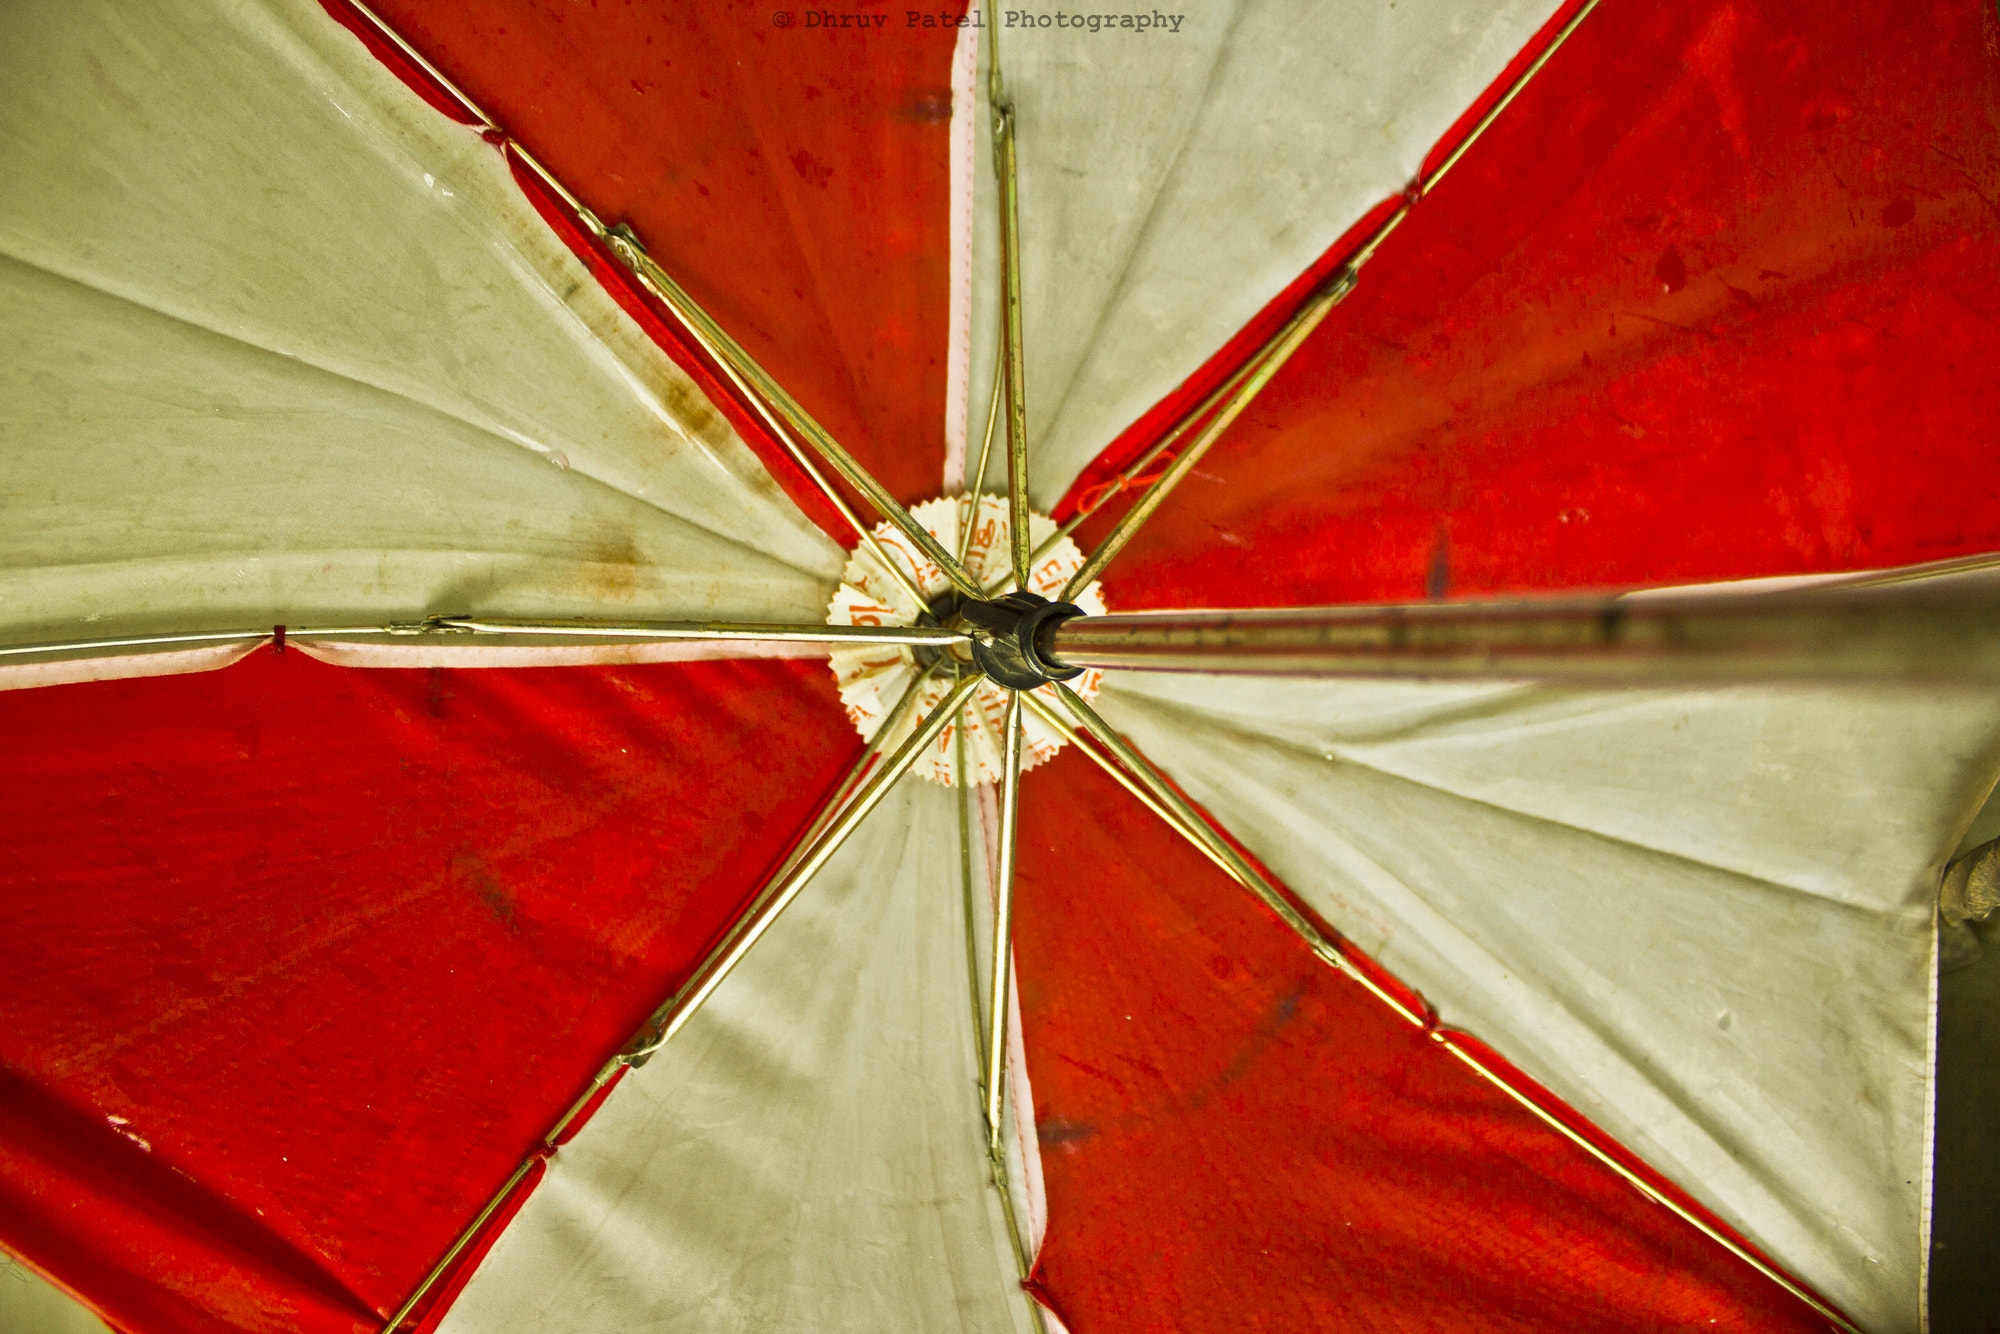 Photograph Inside Umbrella by Dhruv Patel on 500px